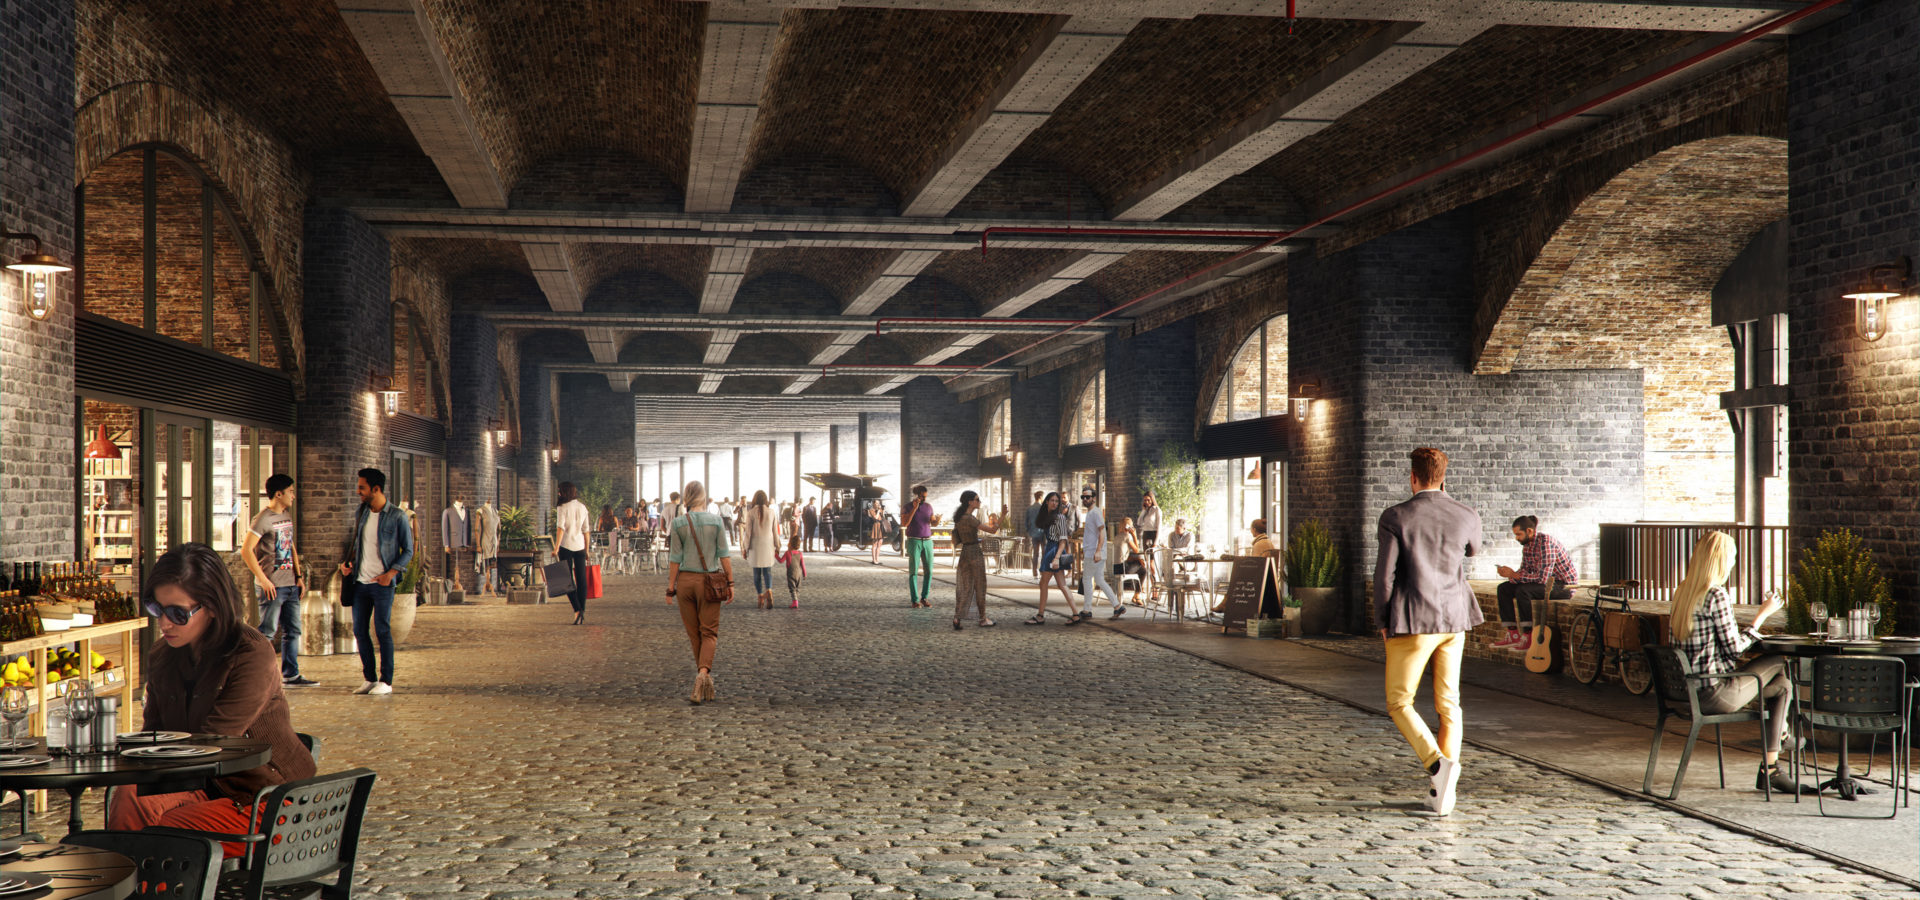 The Goodsyard Mixed Use Masterplan Faulknerbrowns Architects Through The Arches Retail Hh